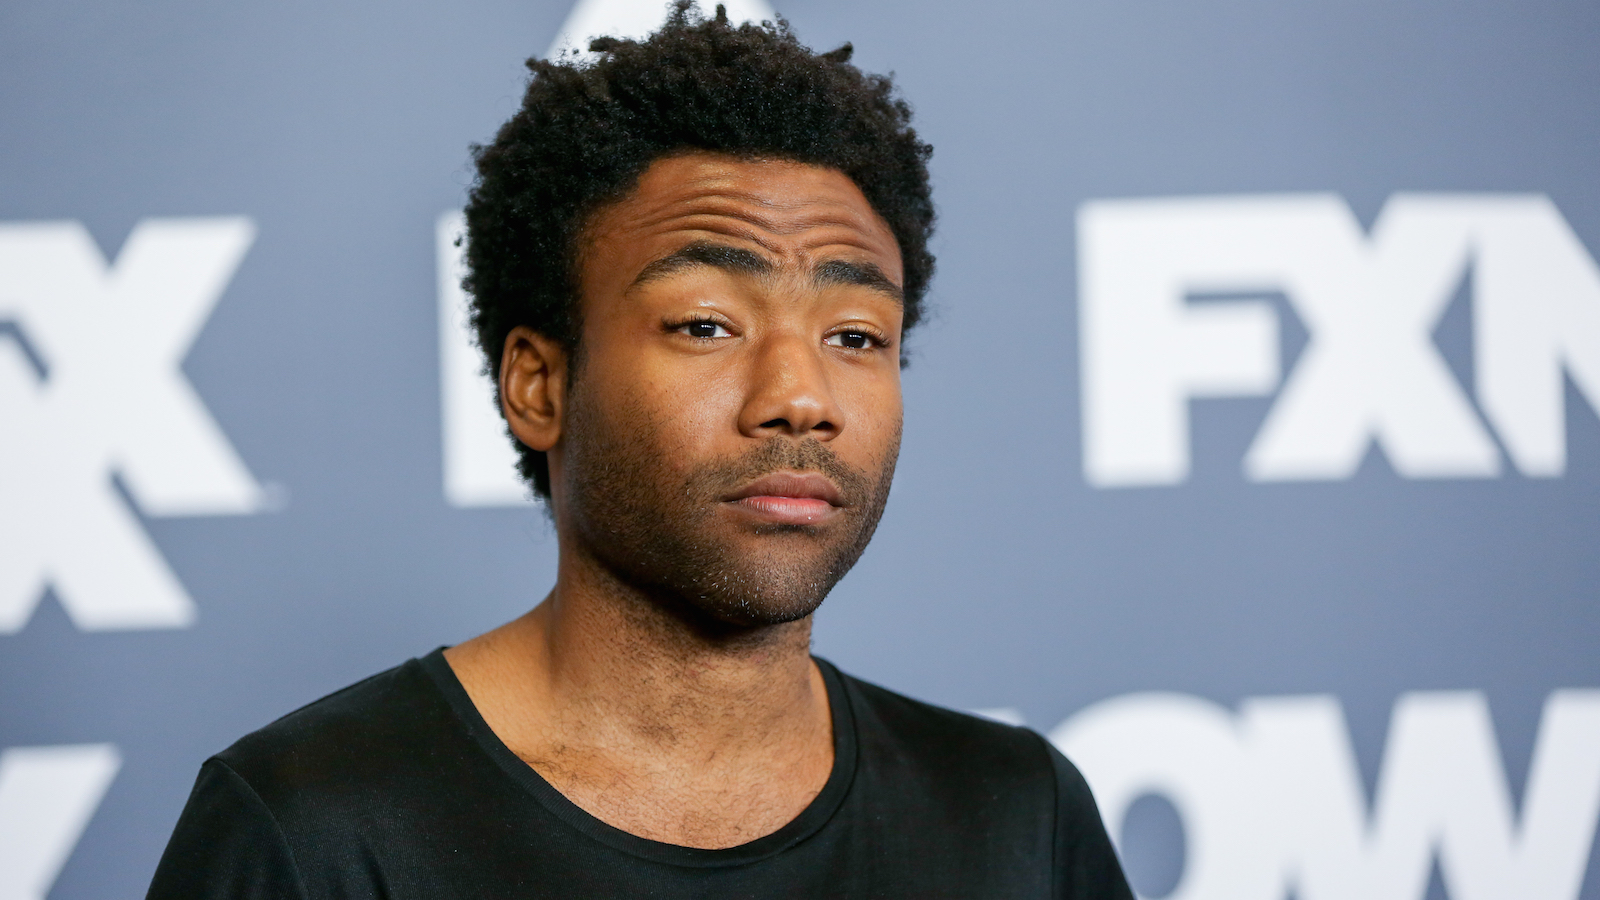 """Donald Glover, a cast member in the television series """"Atlanta,"""" arrives at the FX Television Critics Association summer press tour on Tuesday, Aug. 9, 2016, in Beverly Hills, Calif. (Photo by Rich Fury/Invision/AP)"""